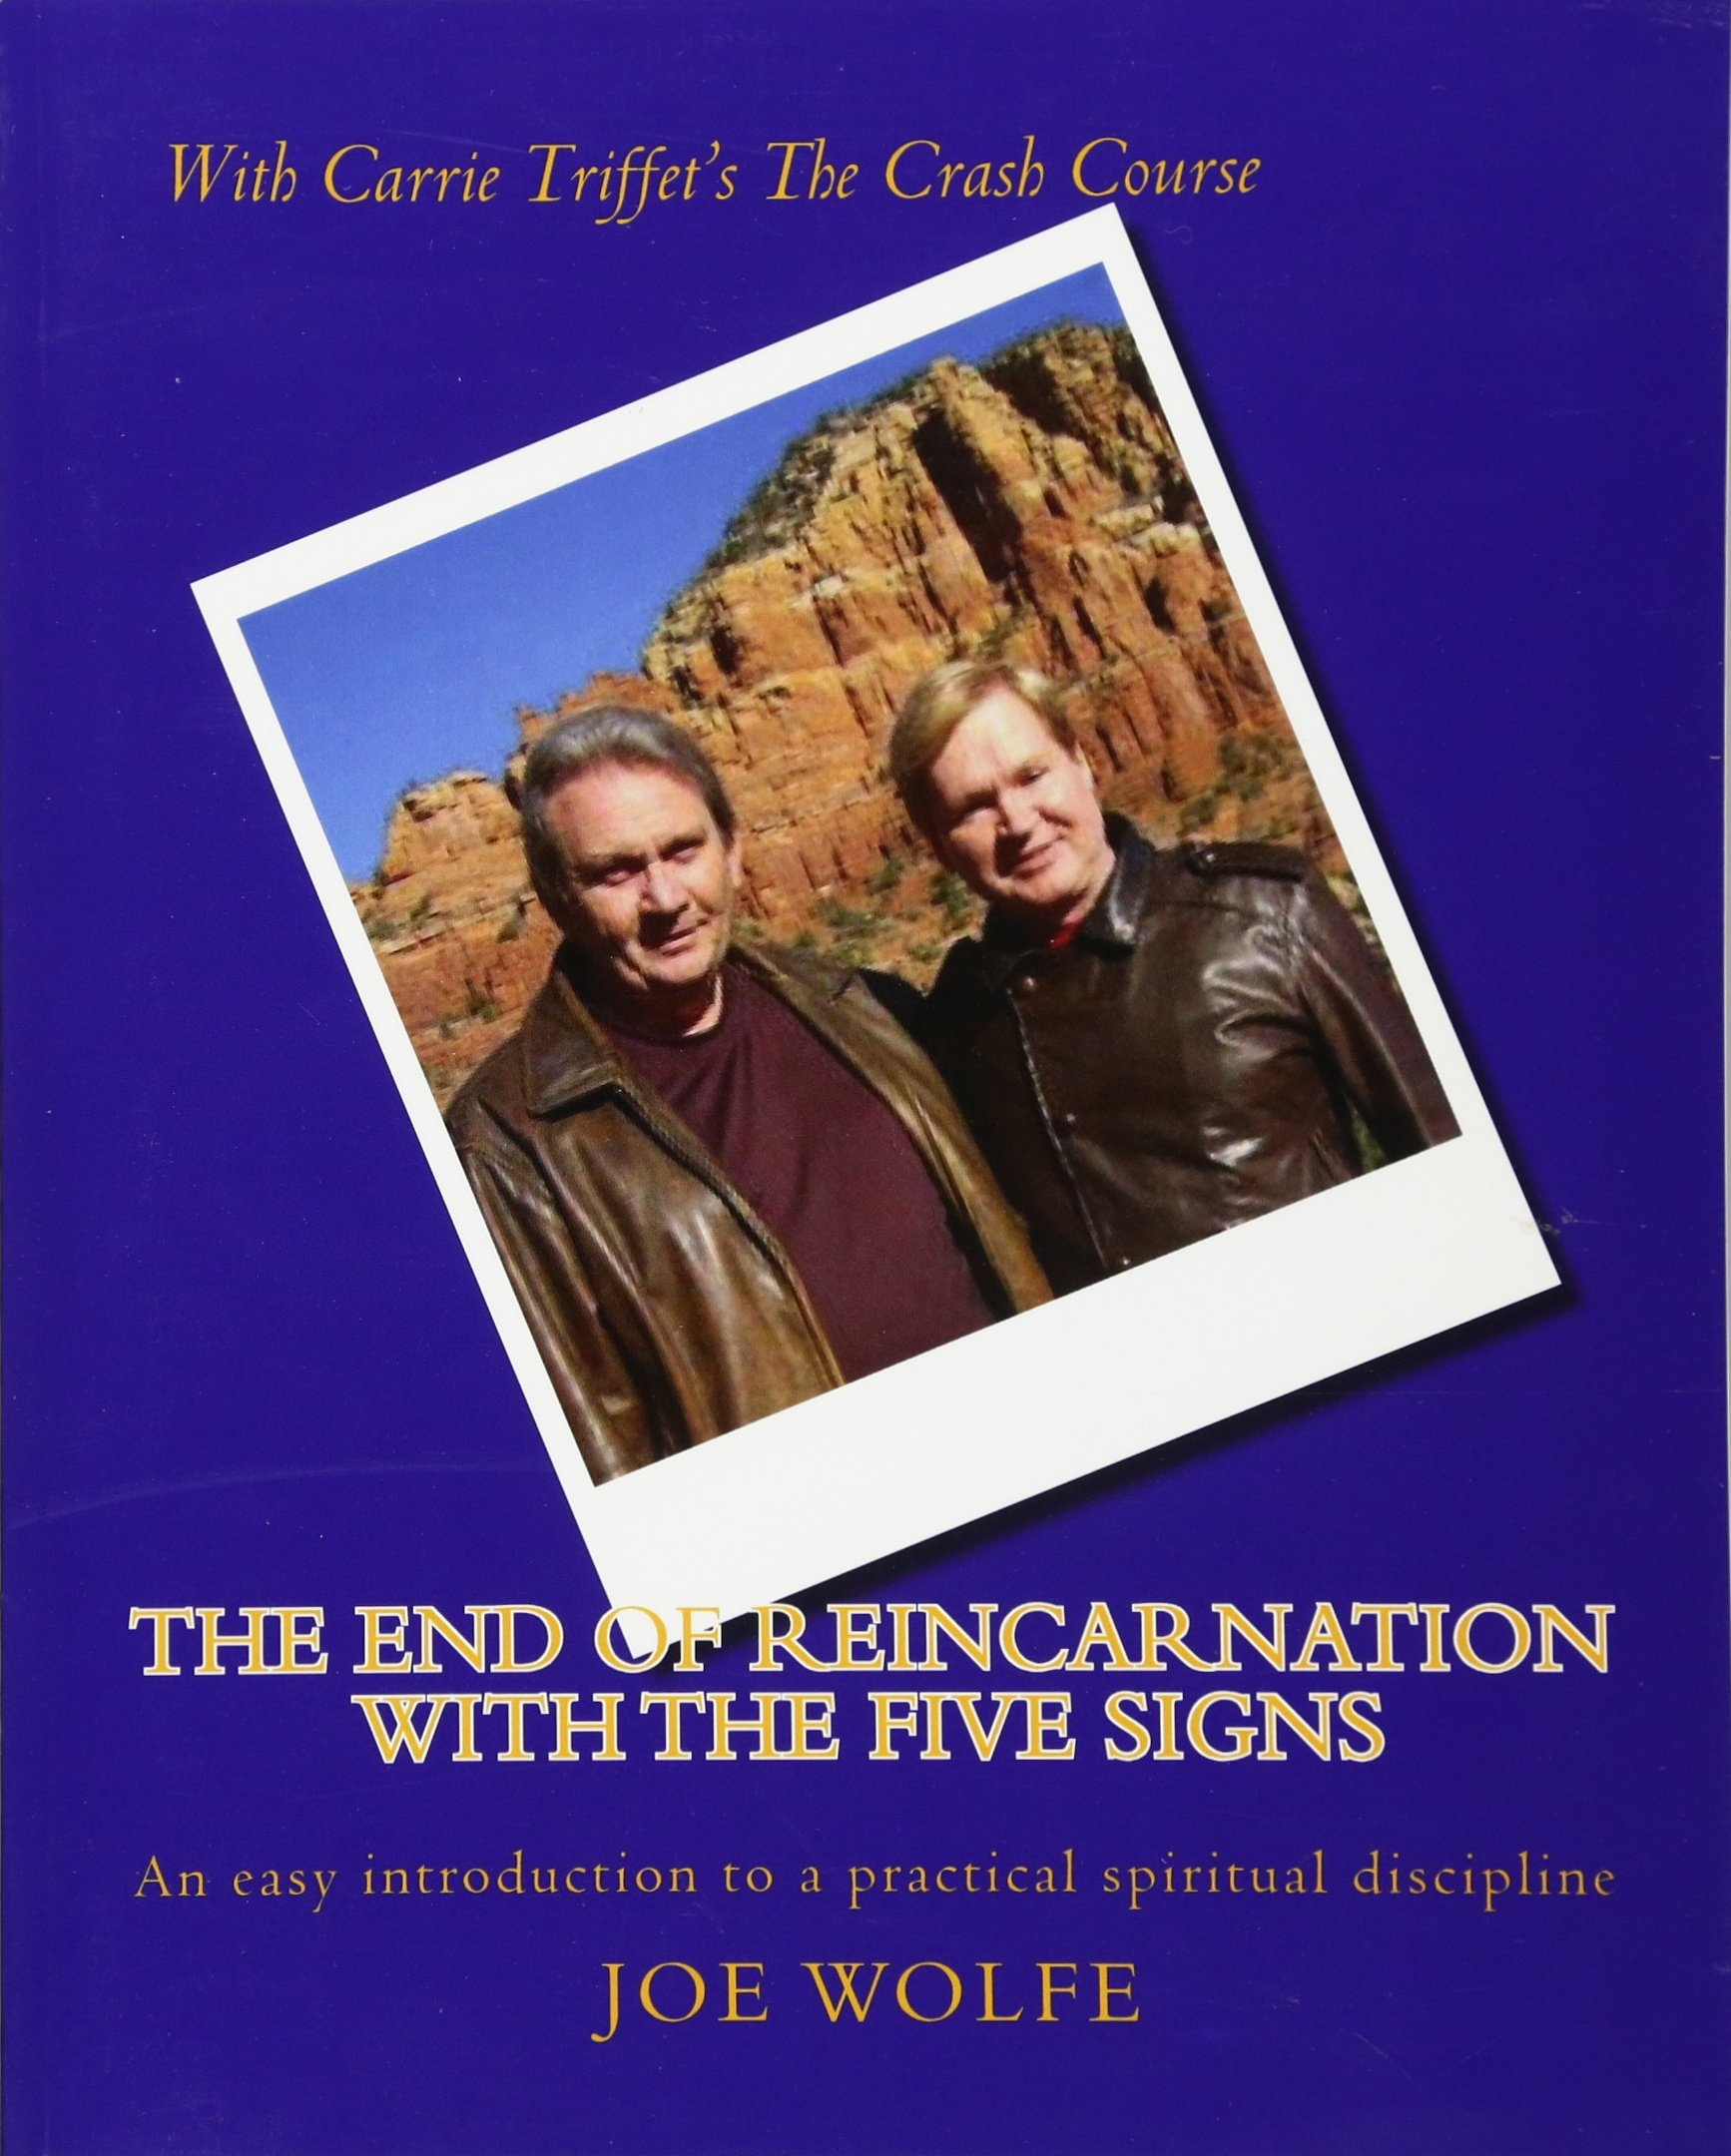 The End of Reincarnation with The Five Signs: An easy introduction to a practical spiritual discipline pdf